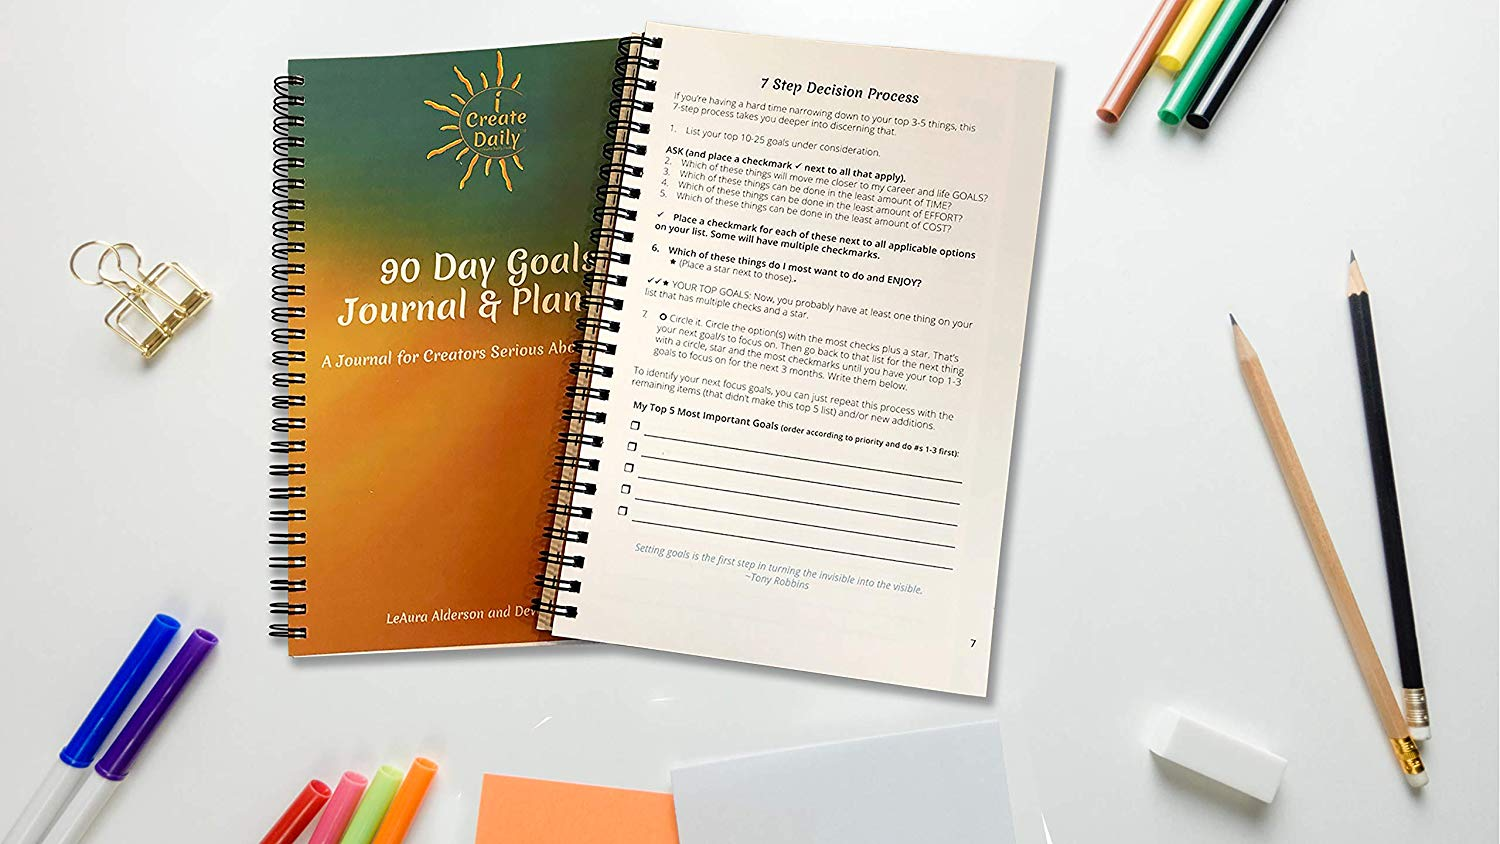 iCreateDaily 90 Day Goal Journal -Teal